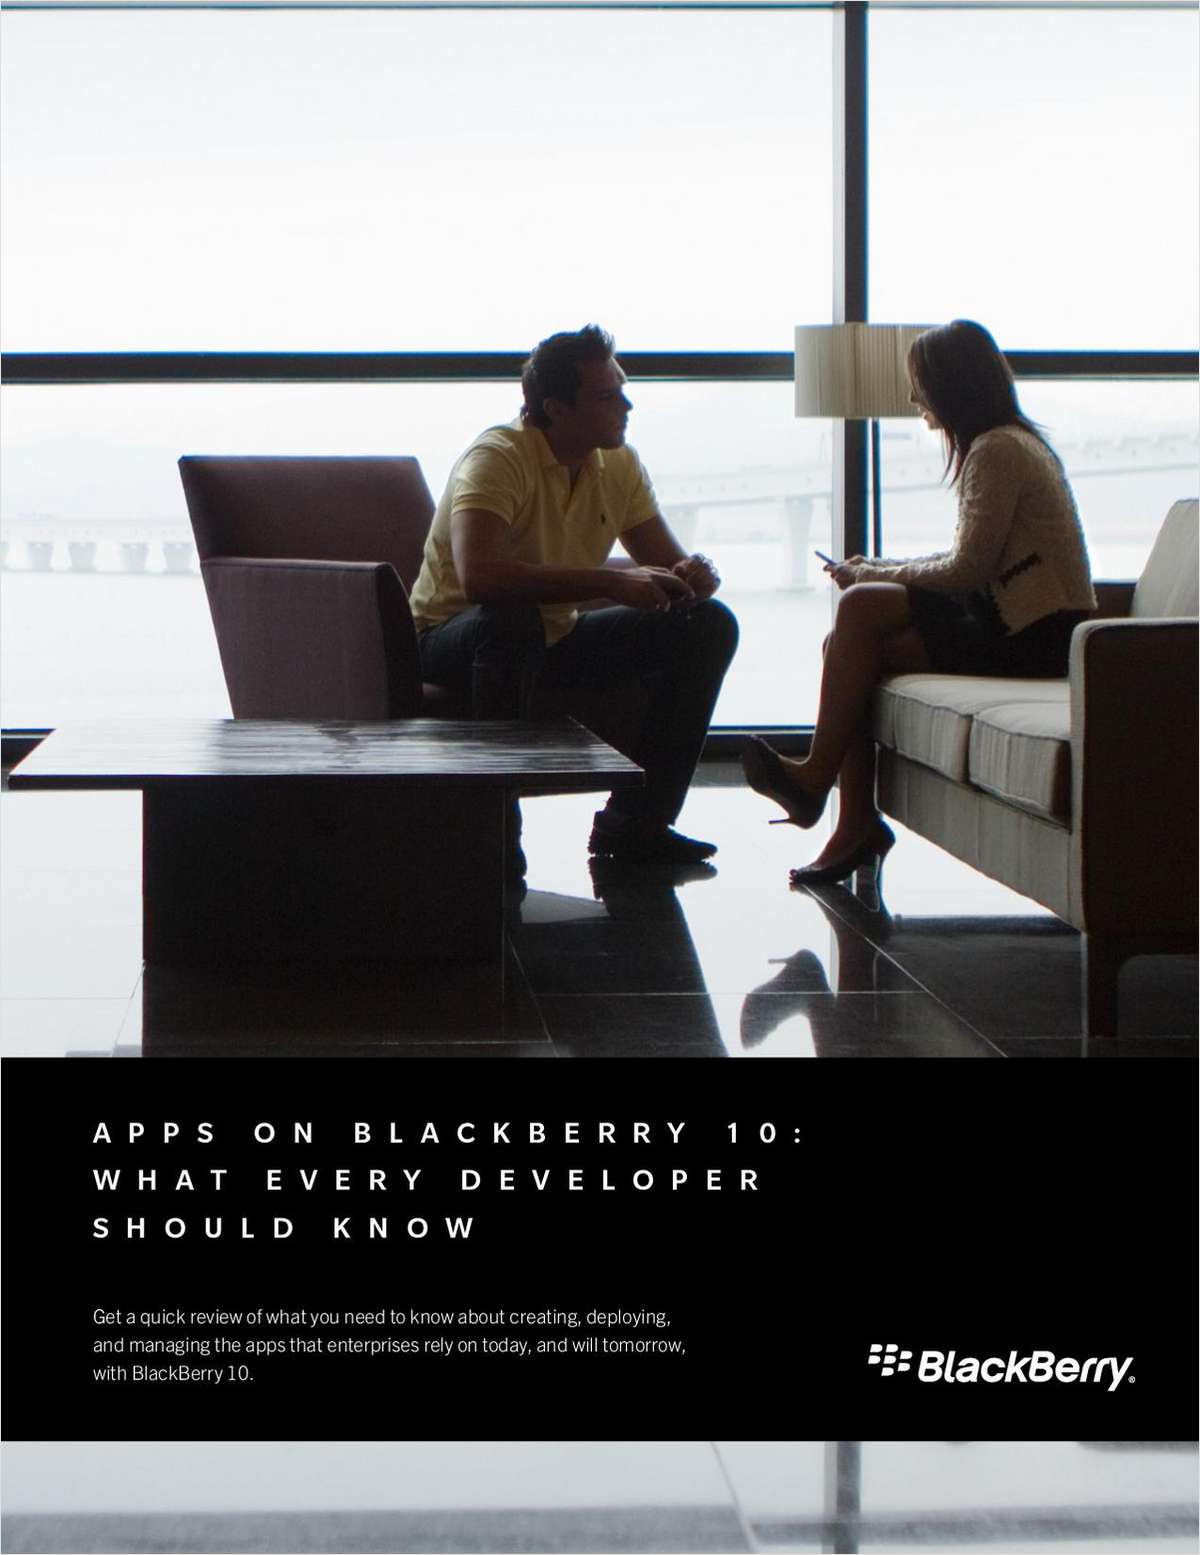 Apps on BlackBerry 10: What Every Developer Should Know